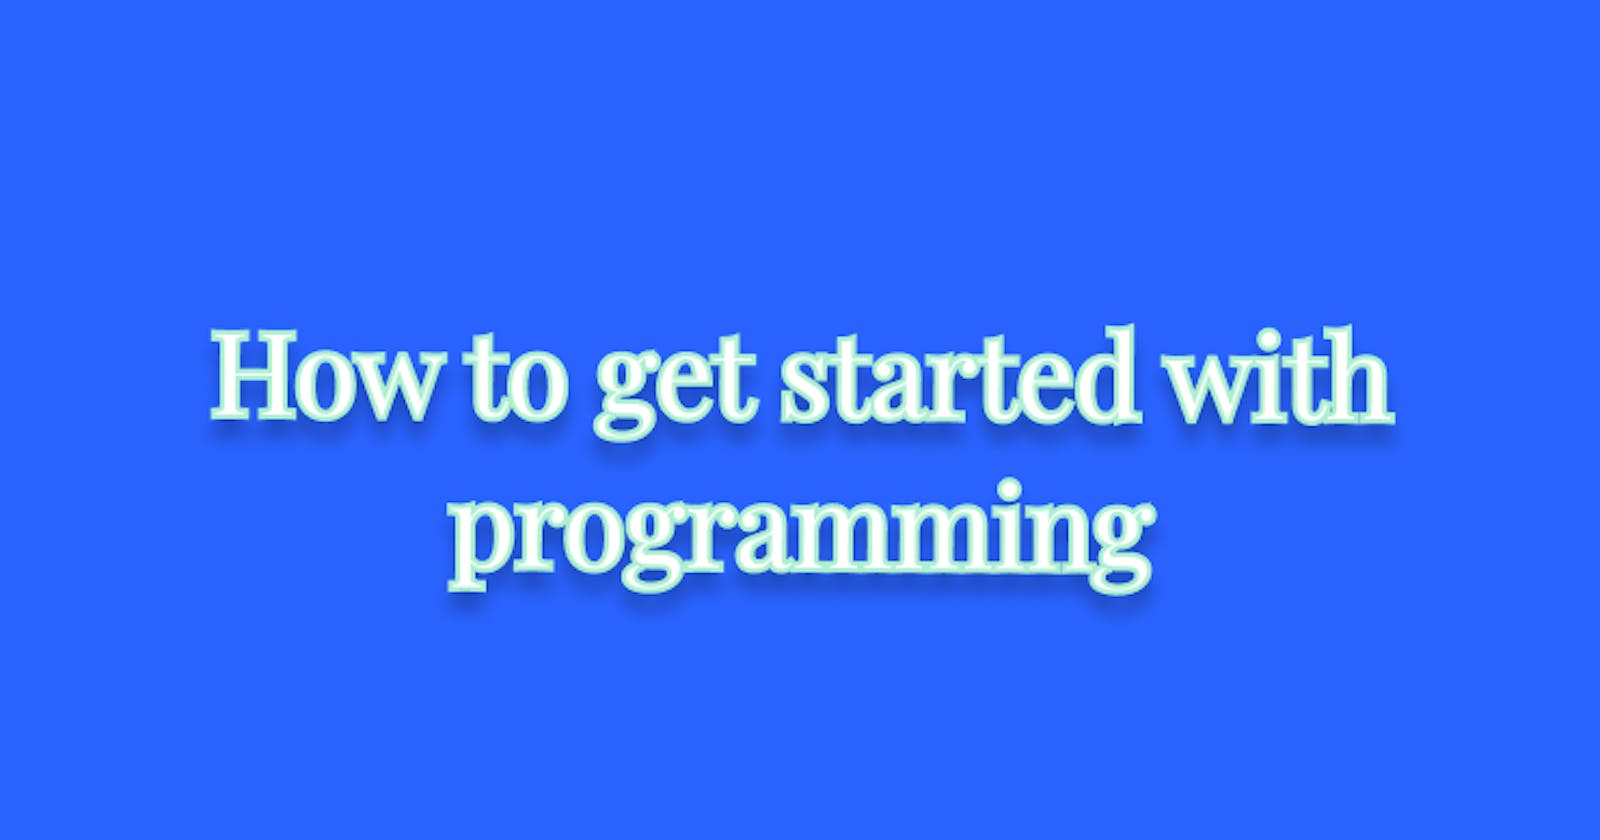 How to get started with programming